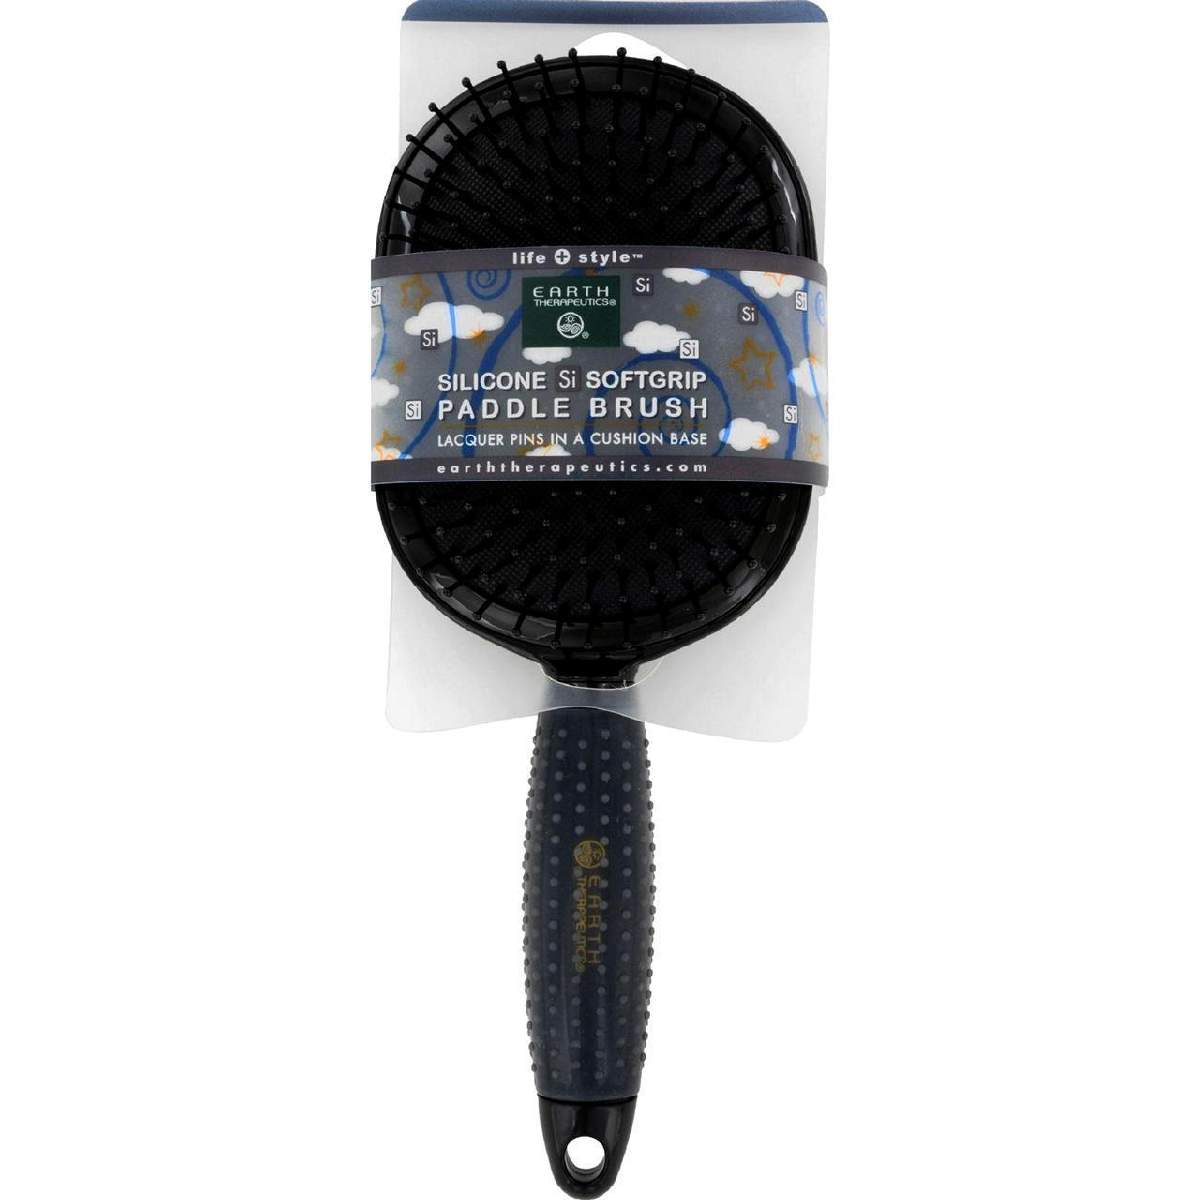 Earth Therapeutics Hair Brush - Paddle - Silicon - Black - 1 Count